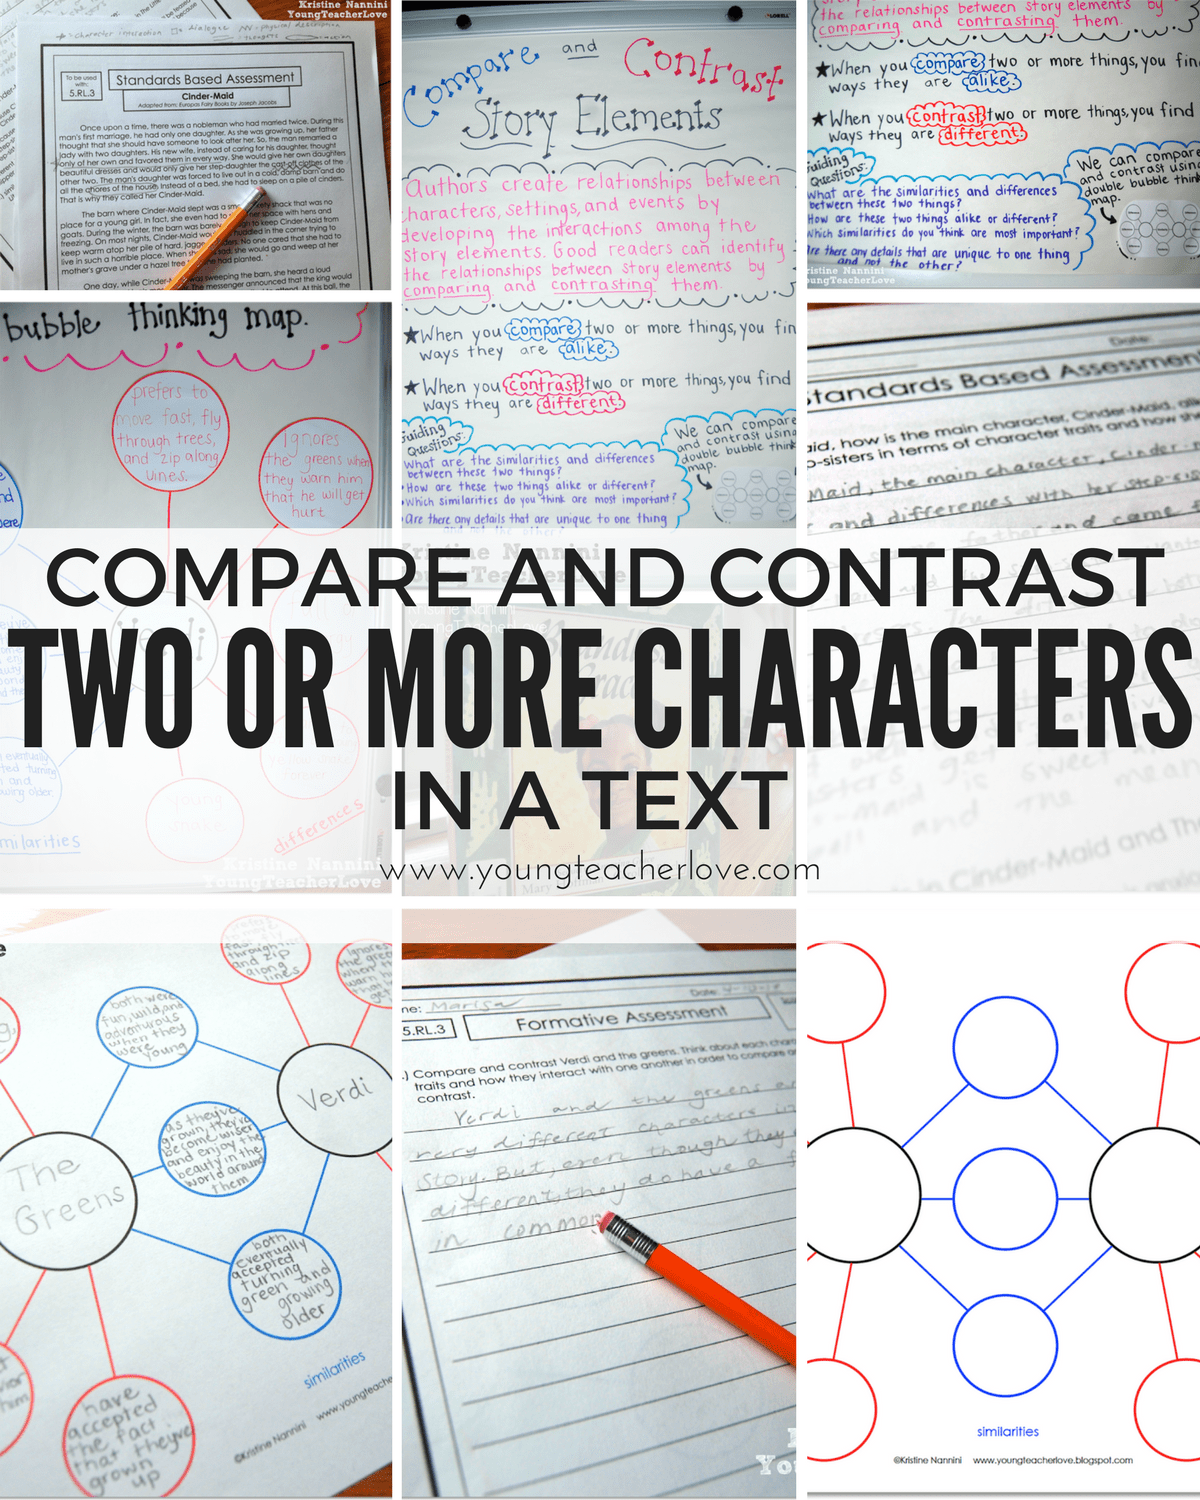 Compare And Contrast Two Or More Characters In A Story